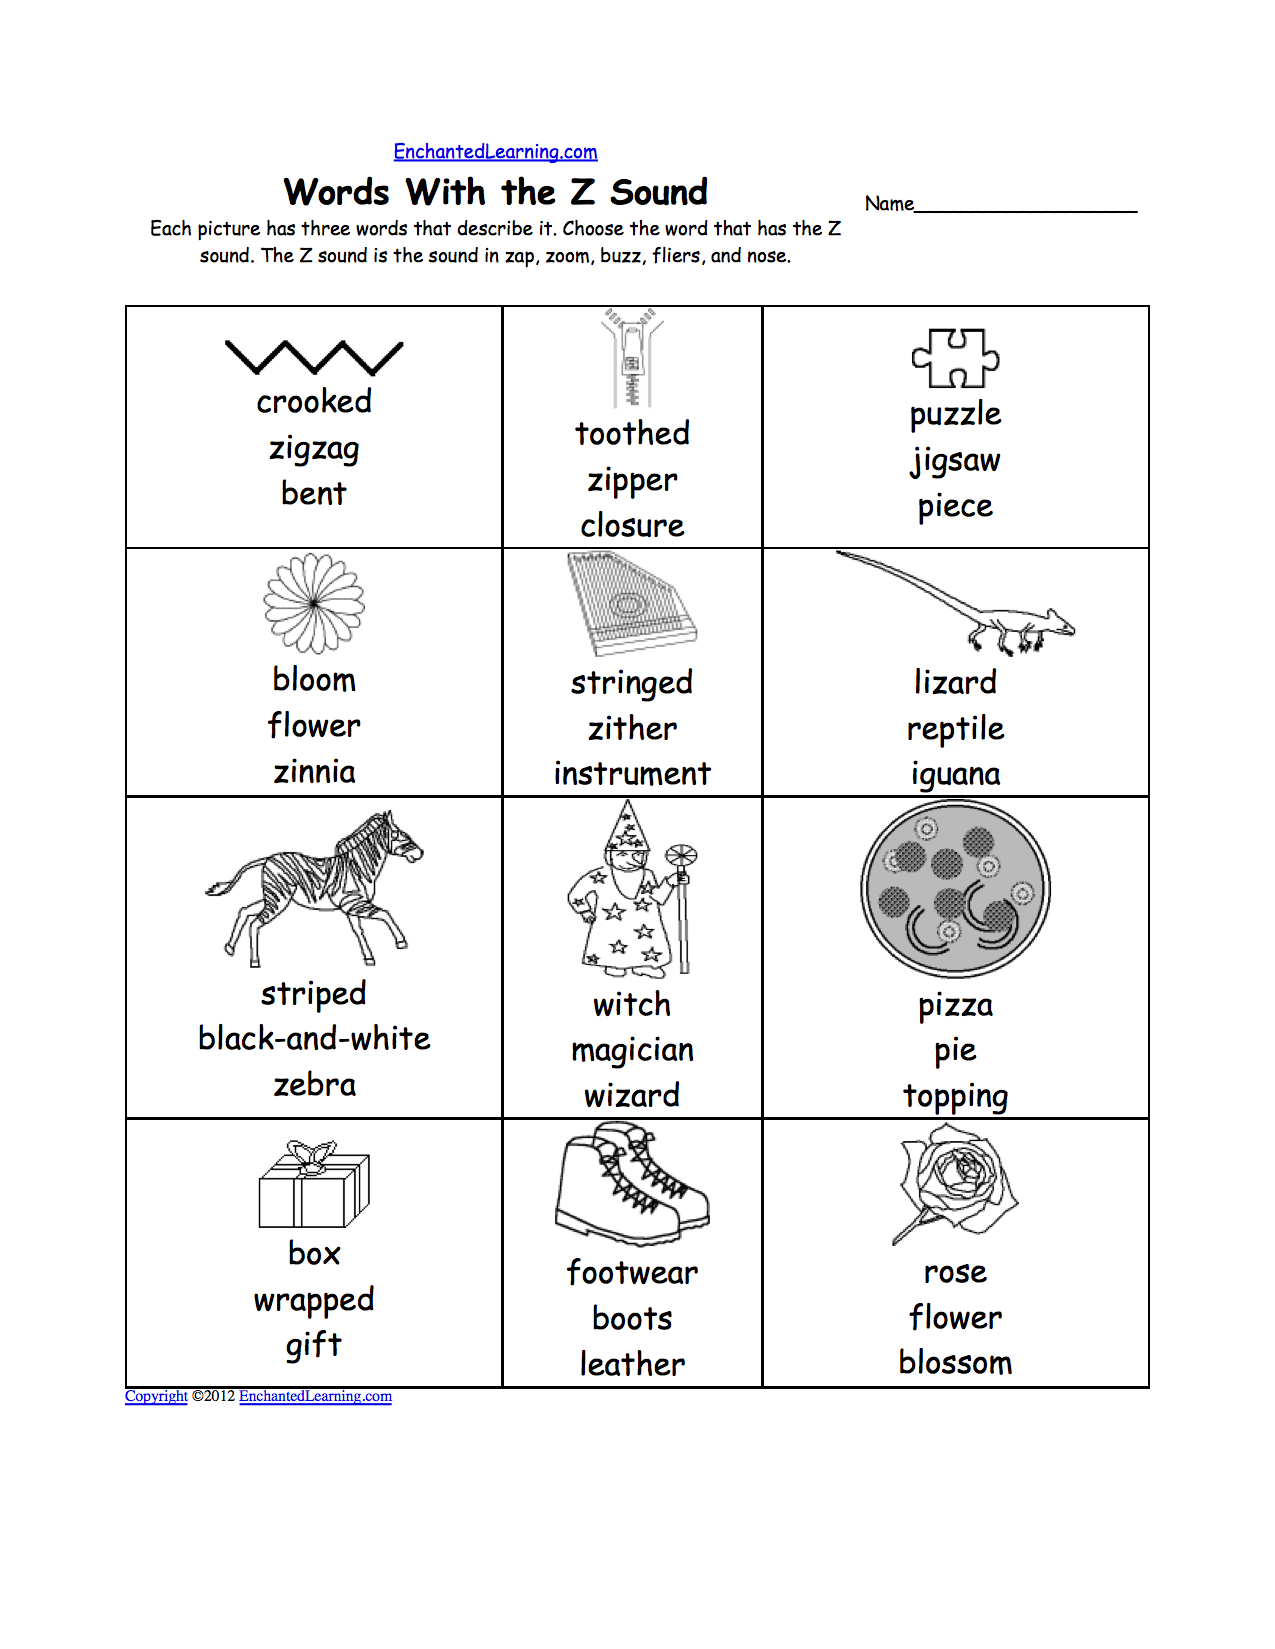 Aldiablosus  Sweet Phonics Worksheets Multiple Choice Worksheets To Print  With Heavenly Phonics Worksheets Multiple Choice Worksheets To Print  Enchantedlearningcom With Amazing Sentences And Phrases Worksheet Also Multiplication For Kindergarten Worksheets In Addition Joined Handwriting Worksheets And Plants And Photosynthesis Worksheets As Well As Compounds And Molecules Worksheets Additionally Free Printable Worksheets On Common And Proper Nouns From Enchantedlearningcom With Aldiablosus  Heavenly Phonics Worksheets Multiple Choice Worksheets To Print  With Amazing Phonics Worksheets Multiple Choice Worksheets To Print  Enchantedlearningcom And Sweet Sentences And Phrases Worksheet Also Multiplication For Kindergarten Worksheets In Addition Joined Handwriting Worksheets From Enchantedlearningcom